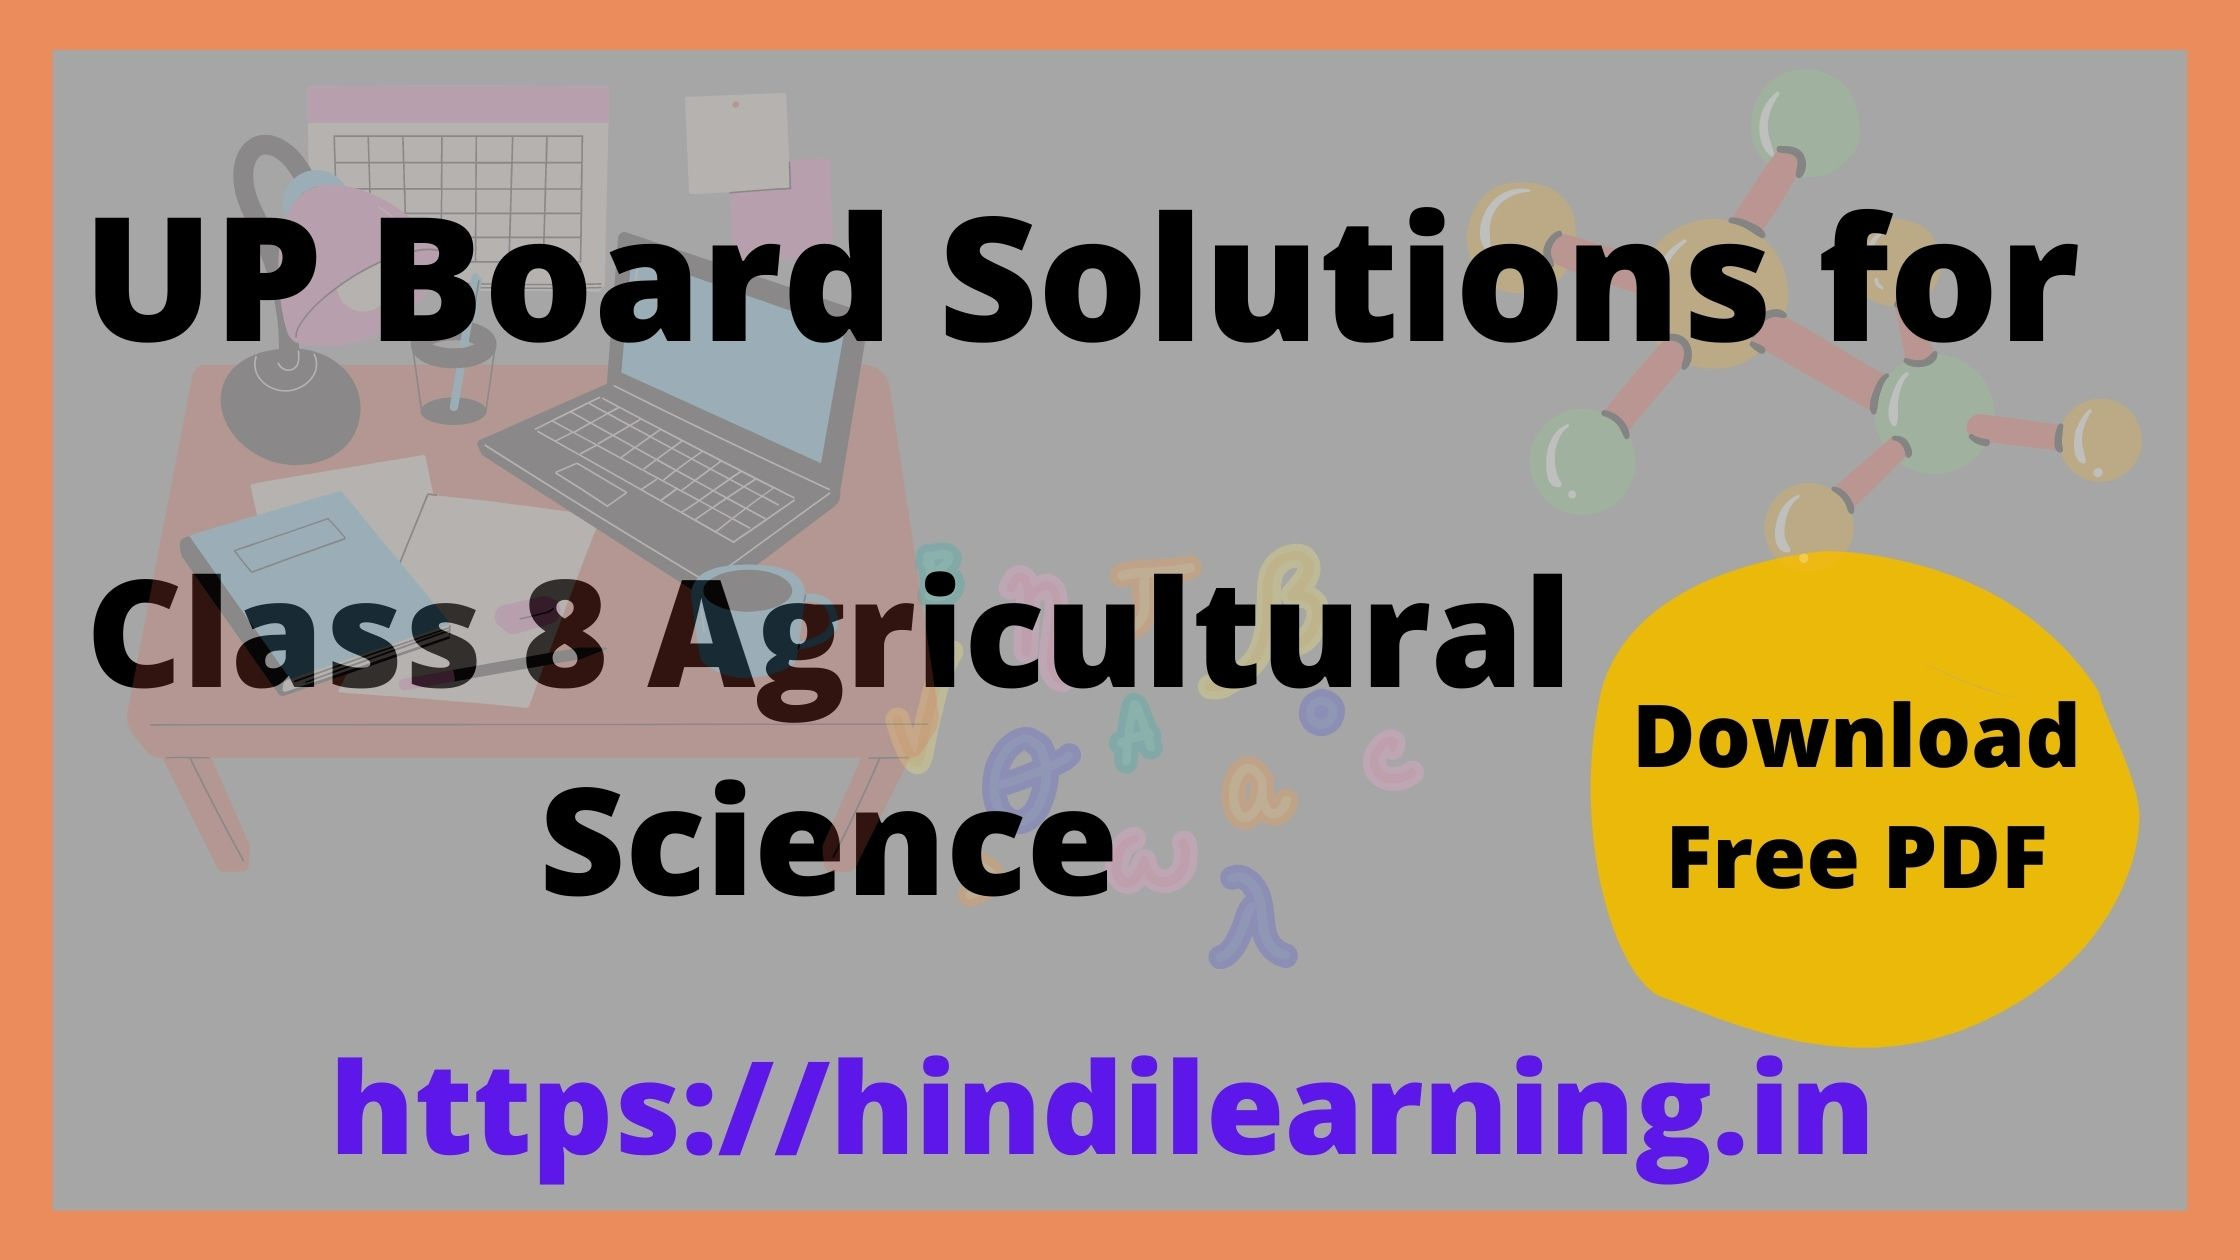 UP Board Solutions for Class 8 Agricultural Science ( कृषि विज्ञान )